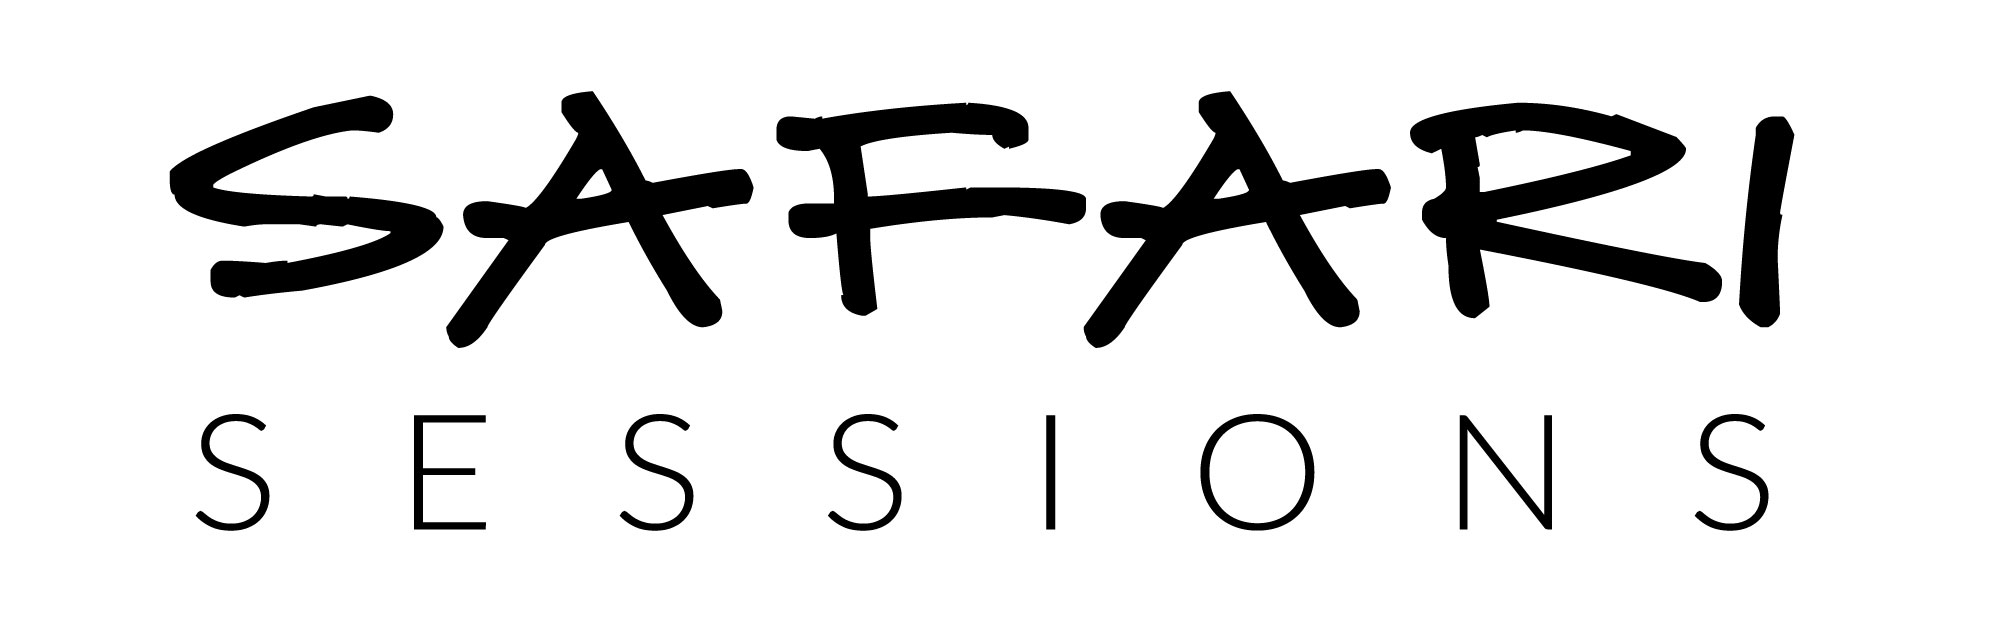 Safari-Sessions-Logo.jpg